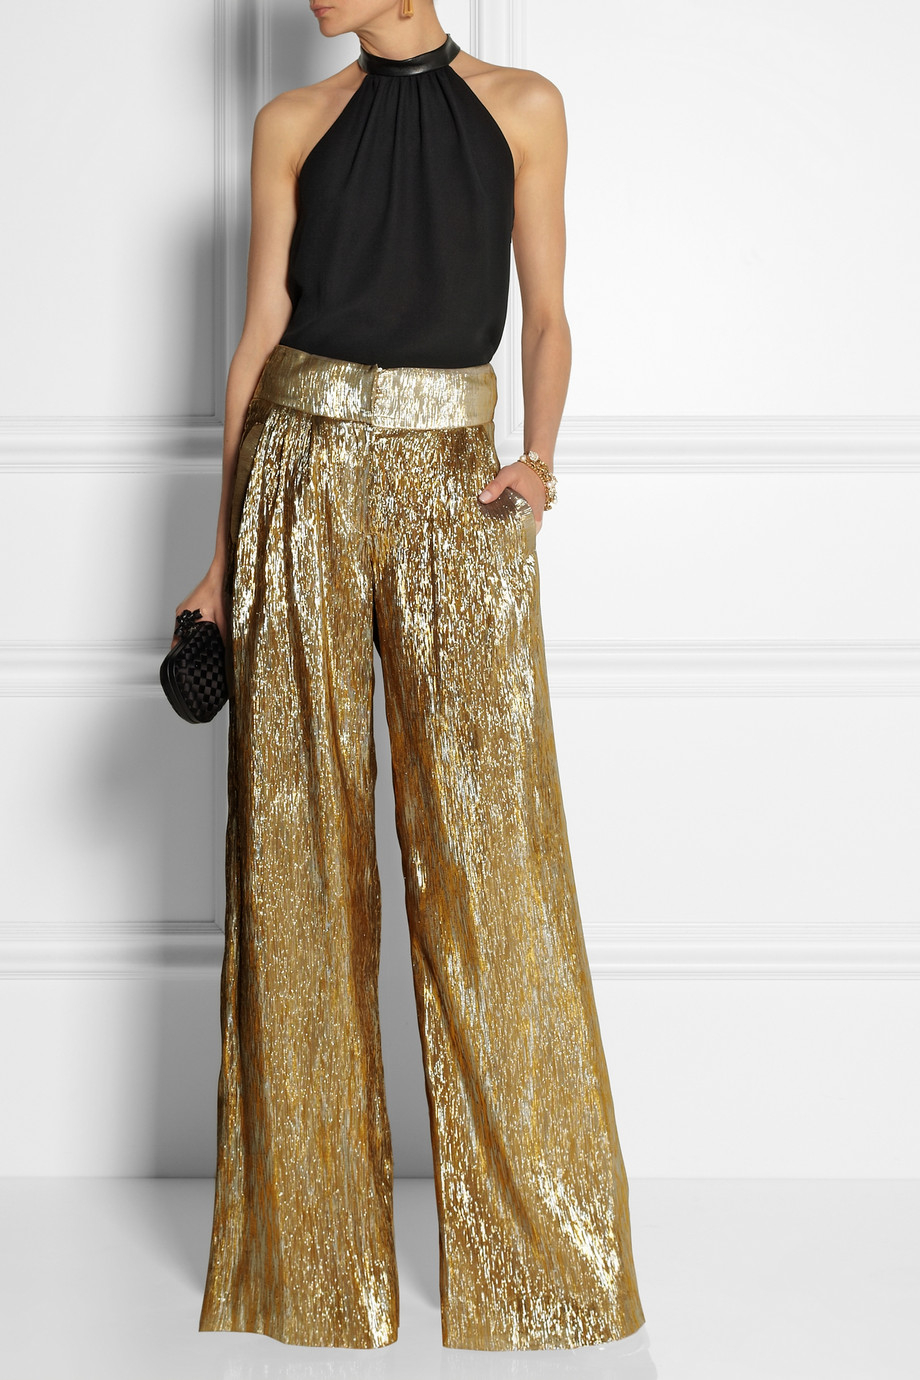 Oscar de la renta Silk-Blend Lamé Wide-Leg Pants in Metallic | Lyst